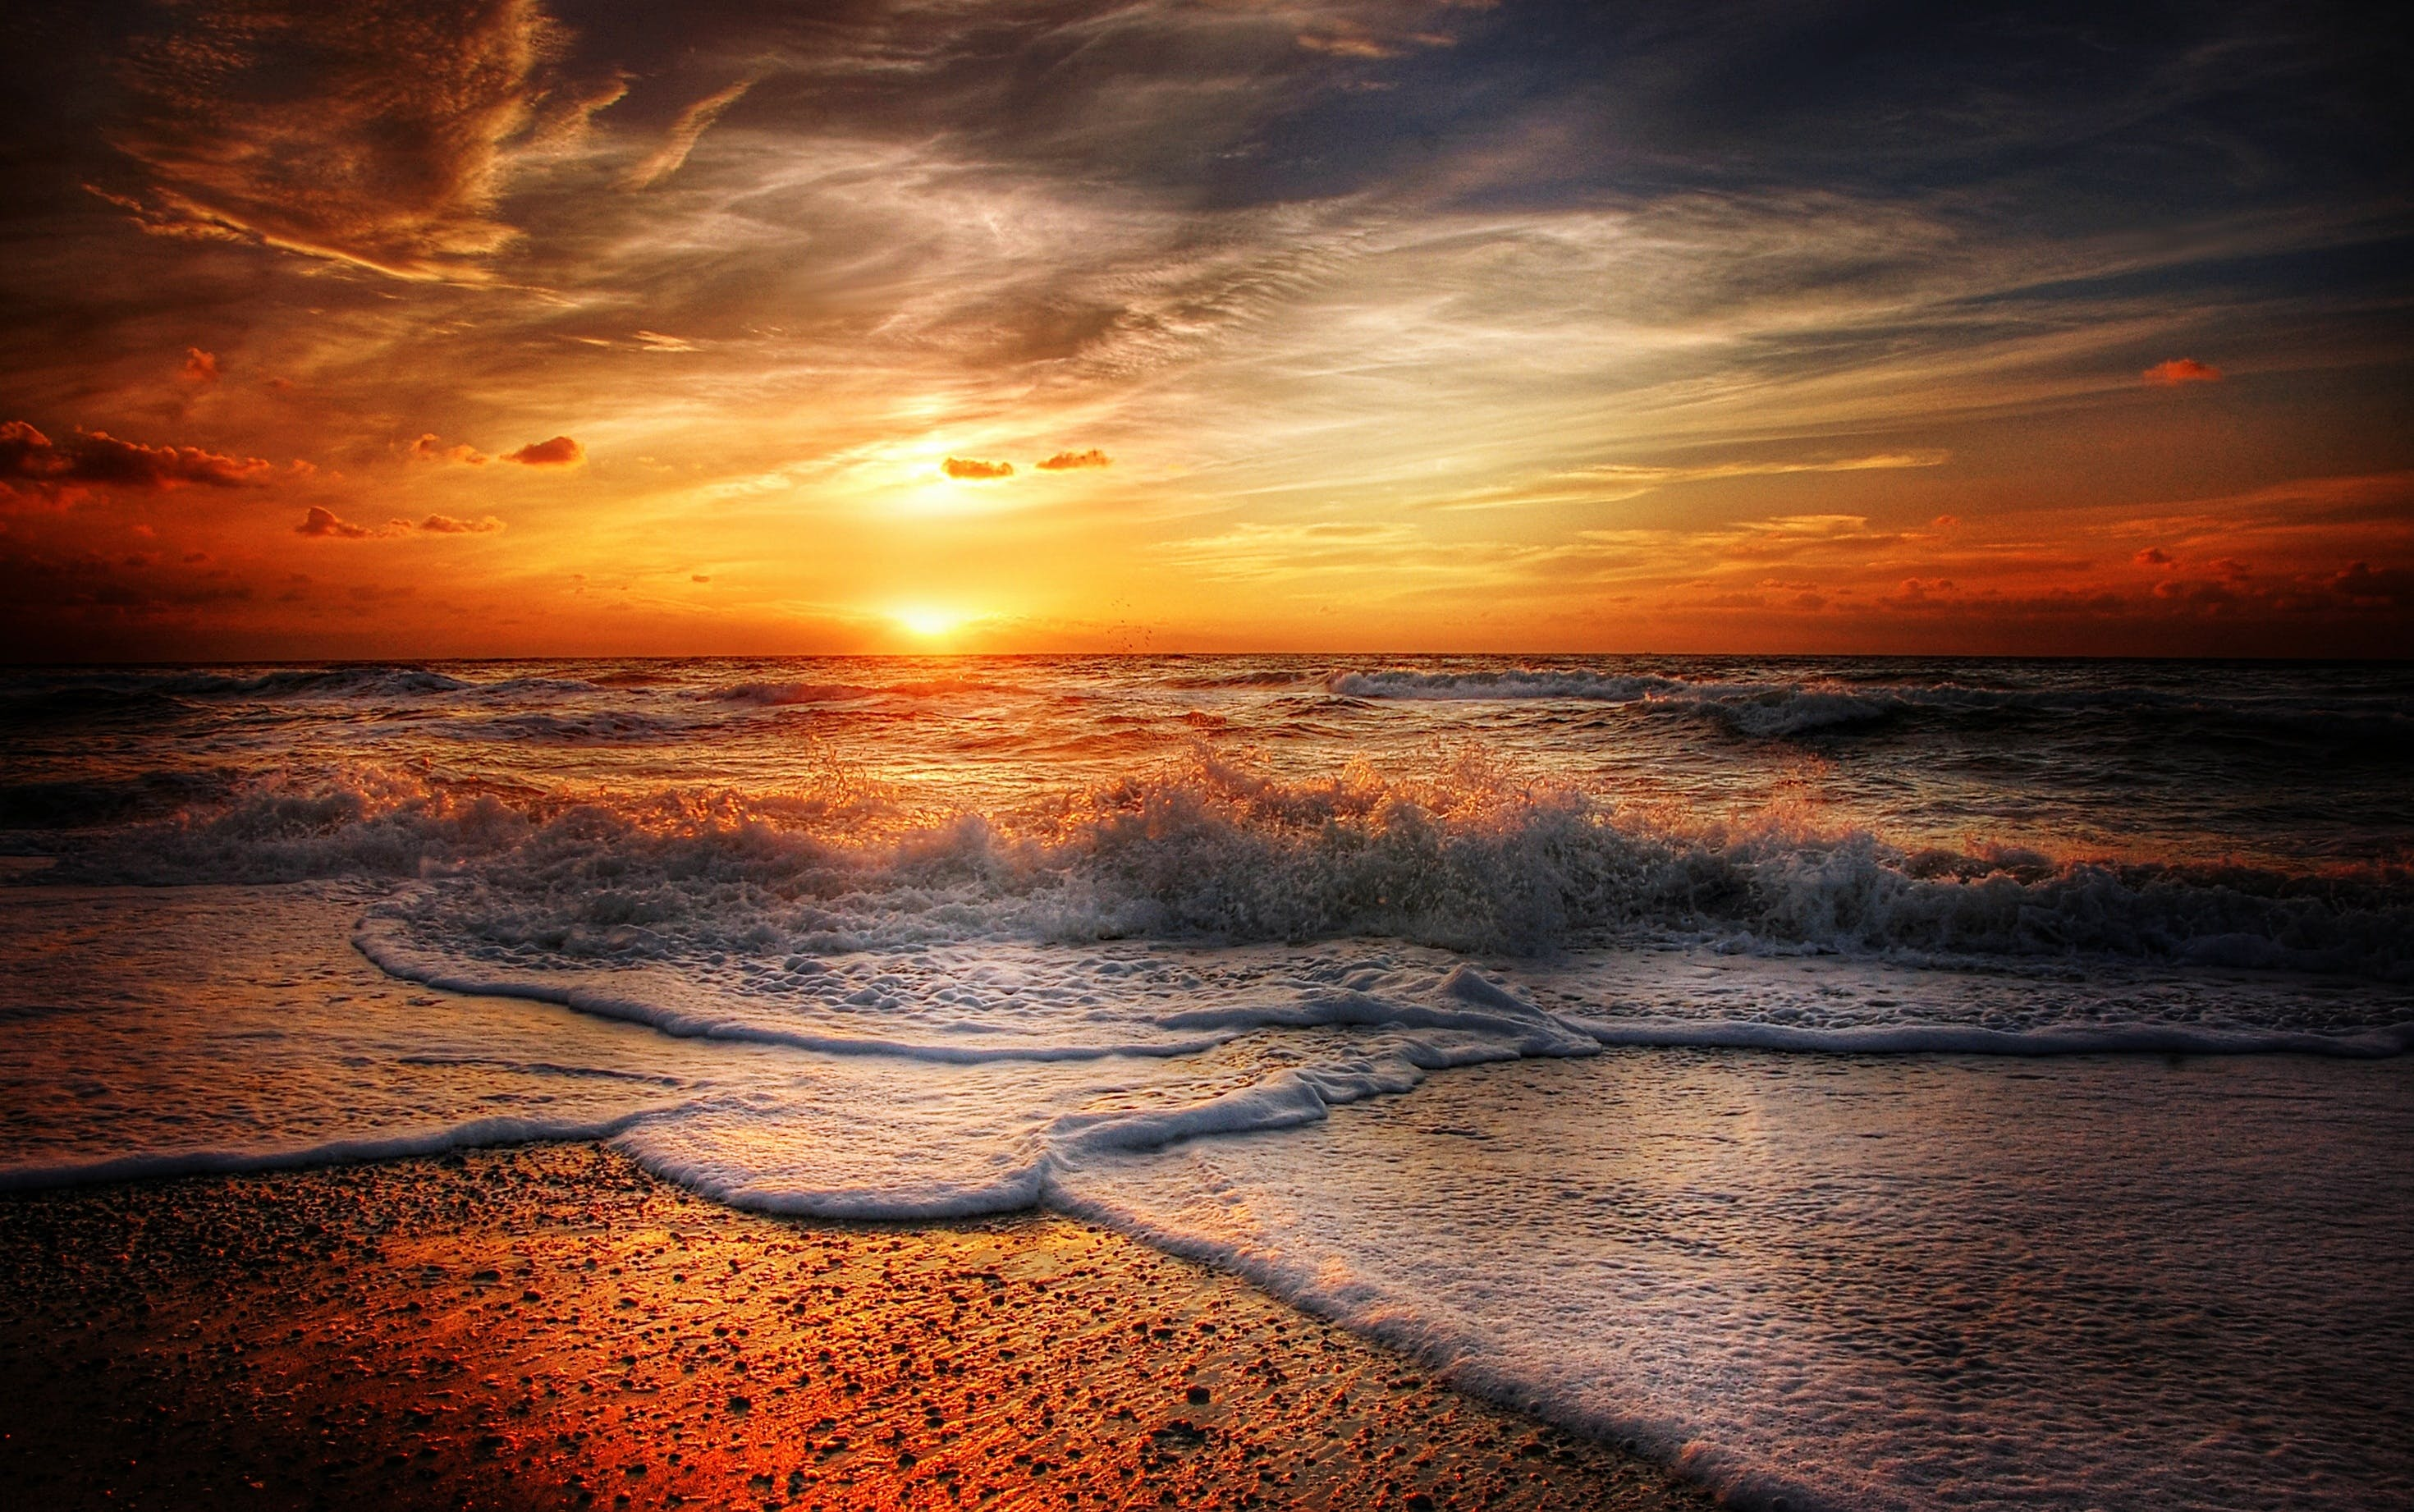 Ocean Waves during Sunset